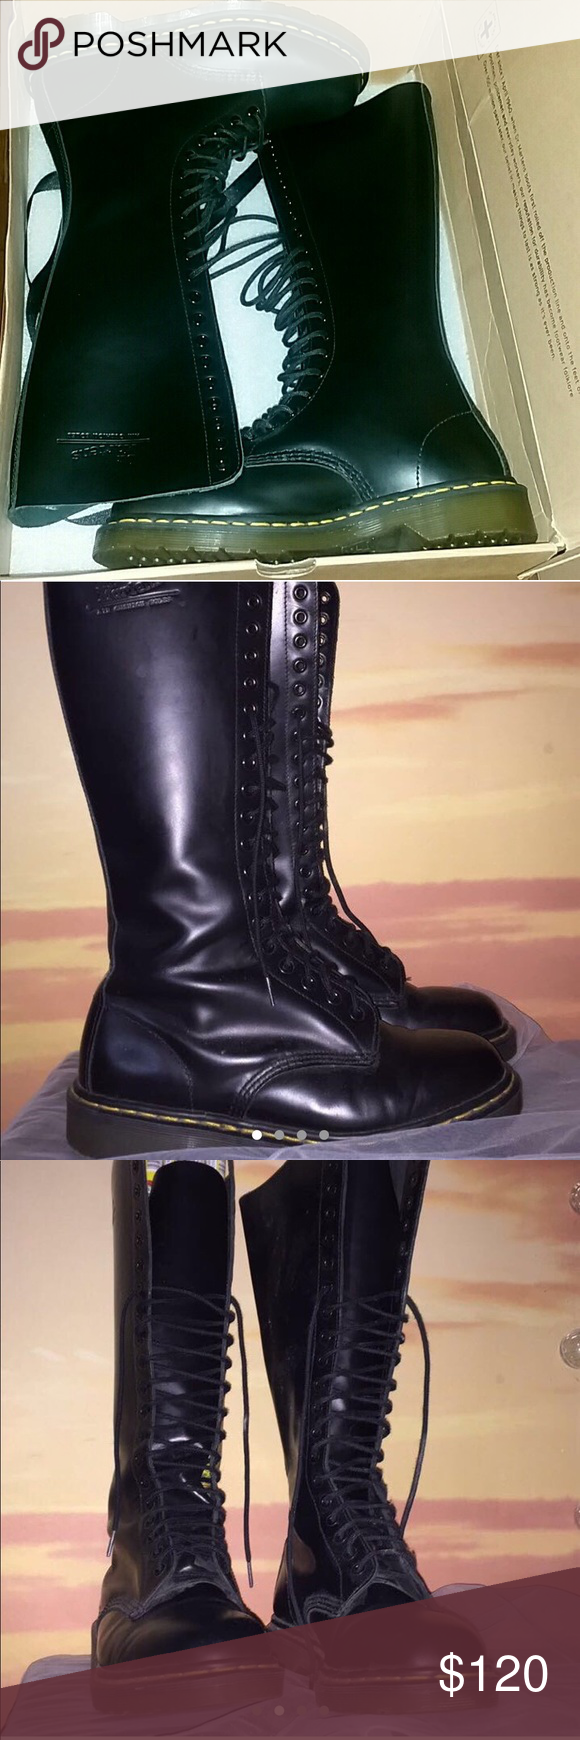 undici Esperto Dissipare  Dr Marten 20 eye 9663 Smooth Boots Dr Marten 20 eye 9663 Smooth Boots Great  condition! Some creases from wearing but that happens wit… | My Posh Picks  in 2019…